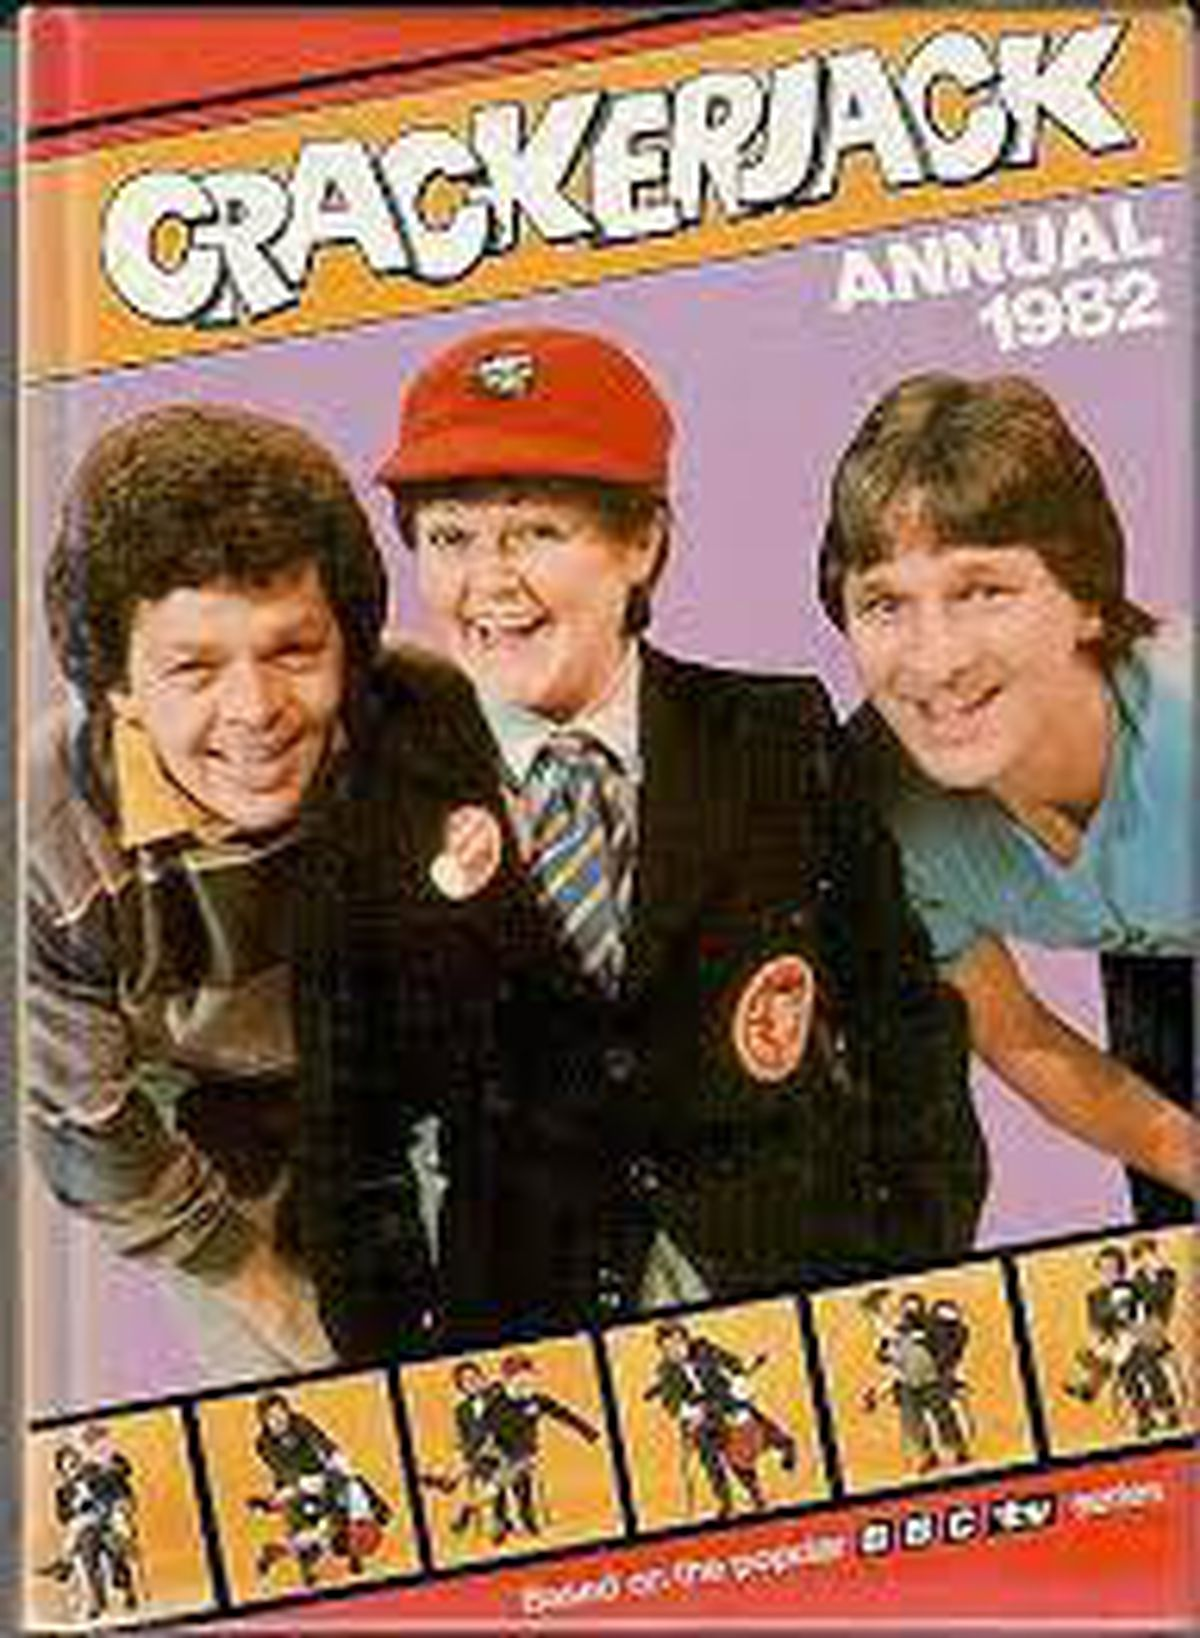 The Krankies and Stu Francis on the cover of the Crackerjack! annual